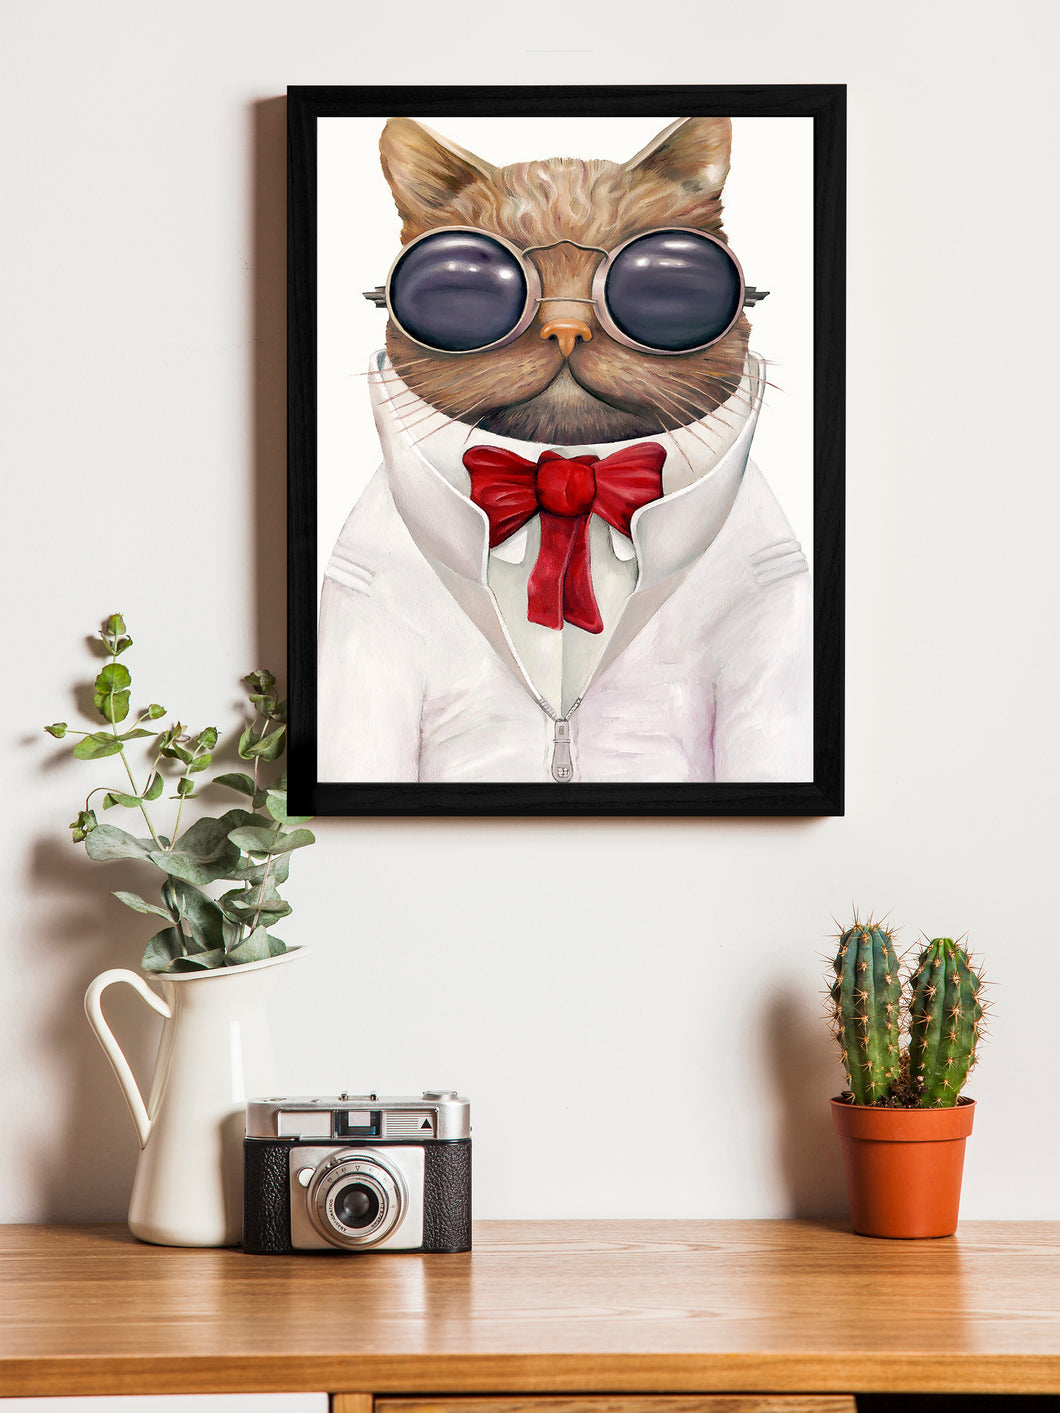 Beautiful Cartoon Cat Theme Framed Art Print, For Wall Decor Size - 13.5 x 17.5 Inch